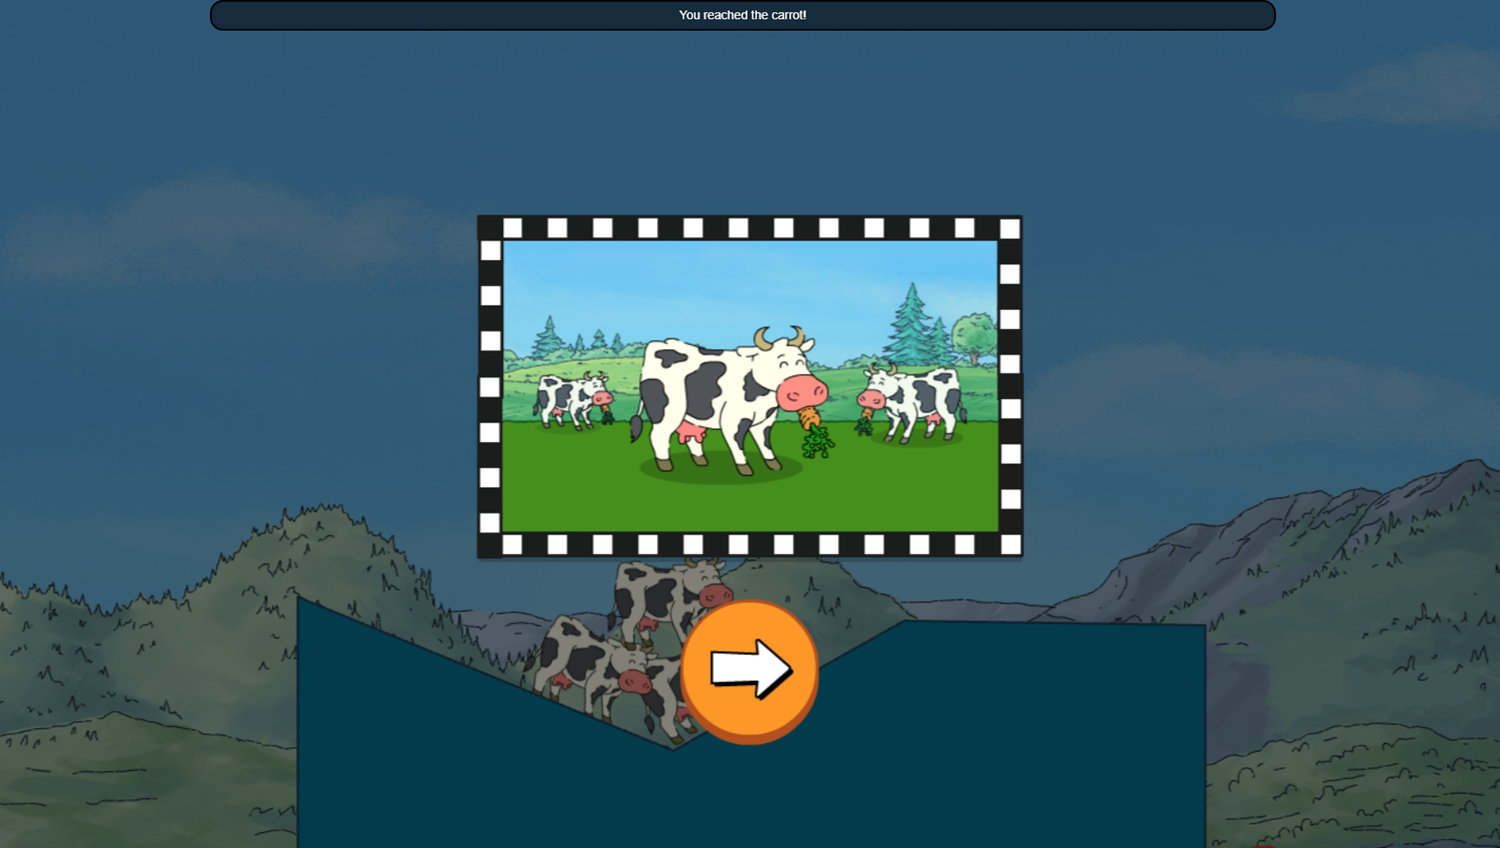 Arthur Tower of Cows Game Pile Level Complete Screenshot.